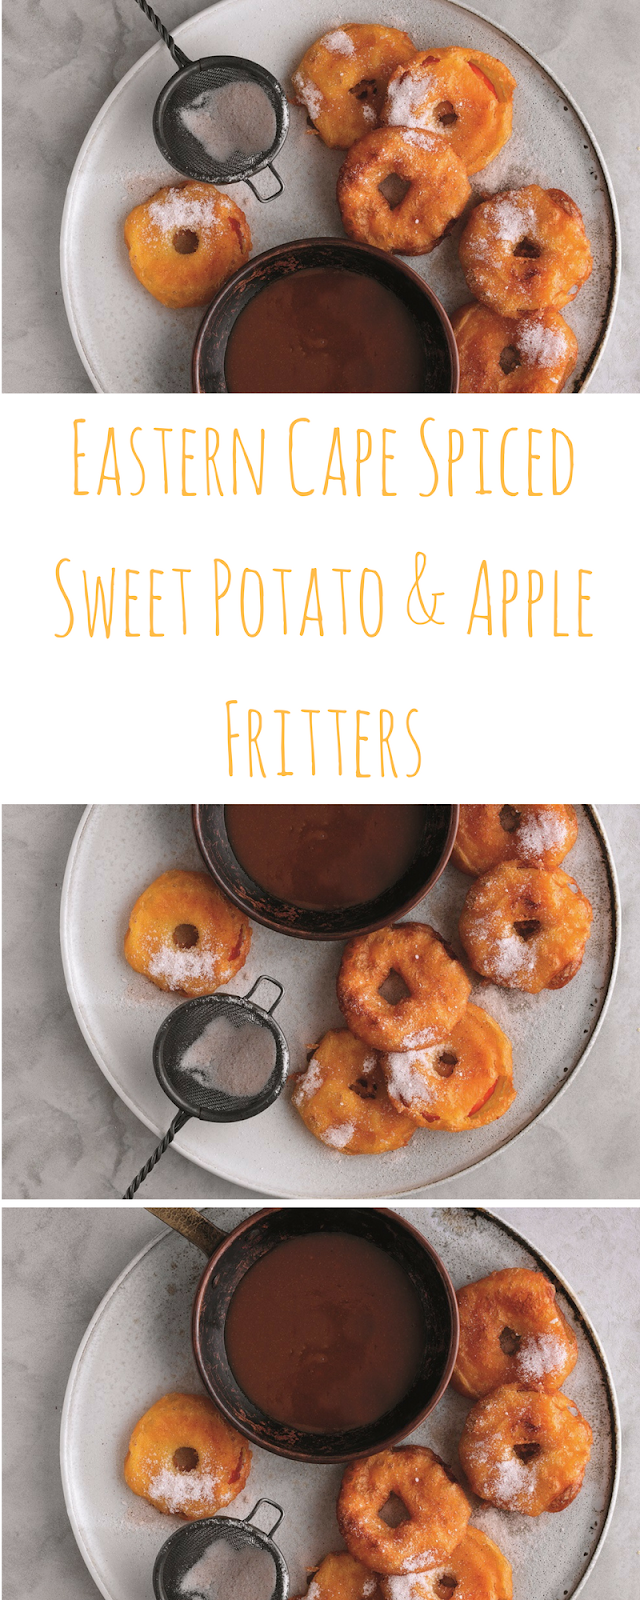 Eastern Cape Spiced Sweet Potato And Apple Fritters